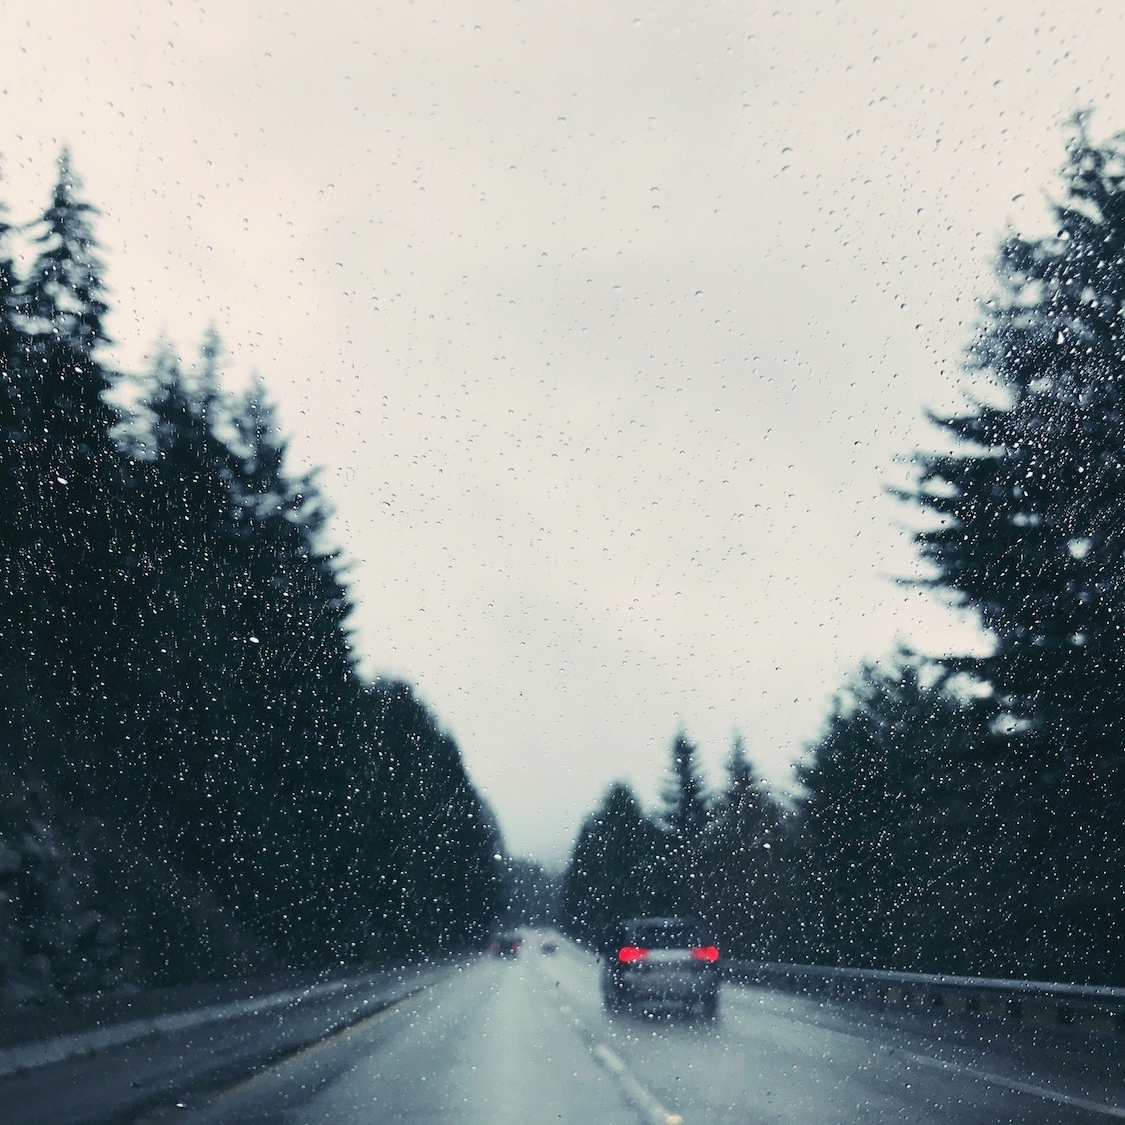 Driving in the rain. Pacific Northwest winter.